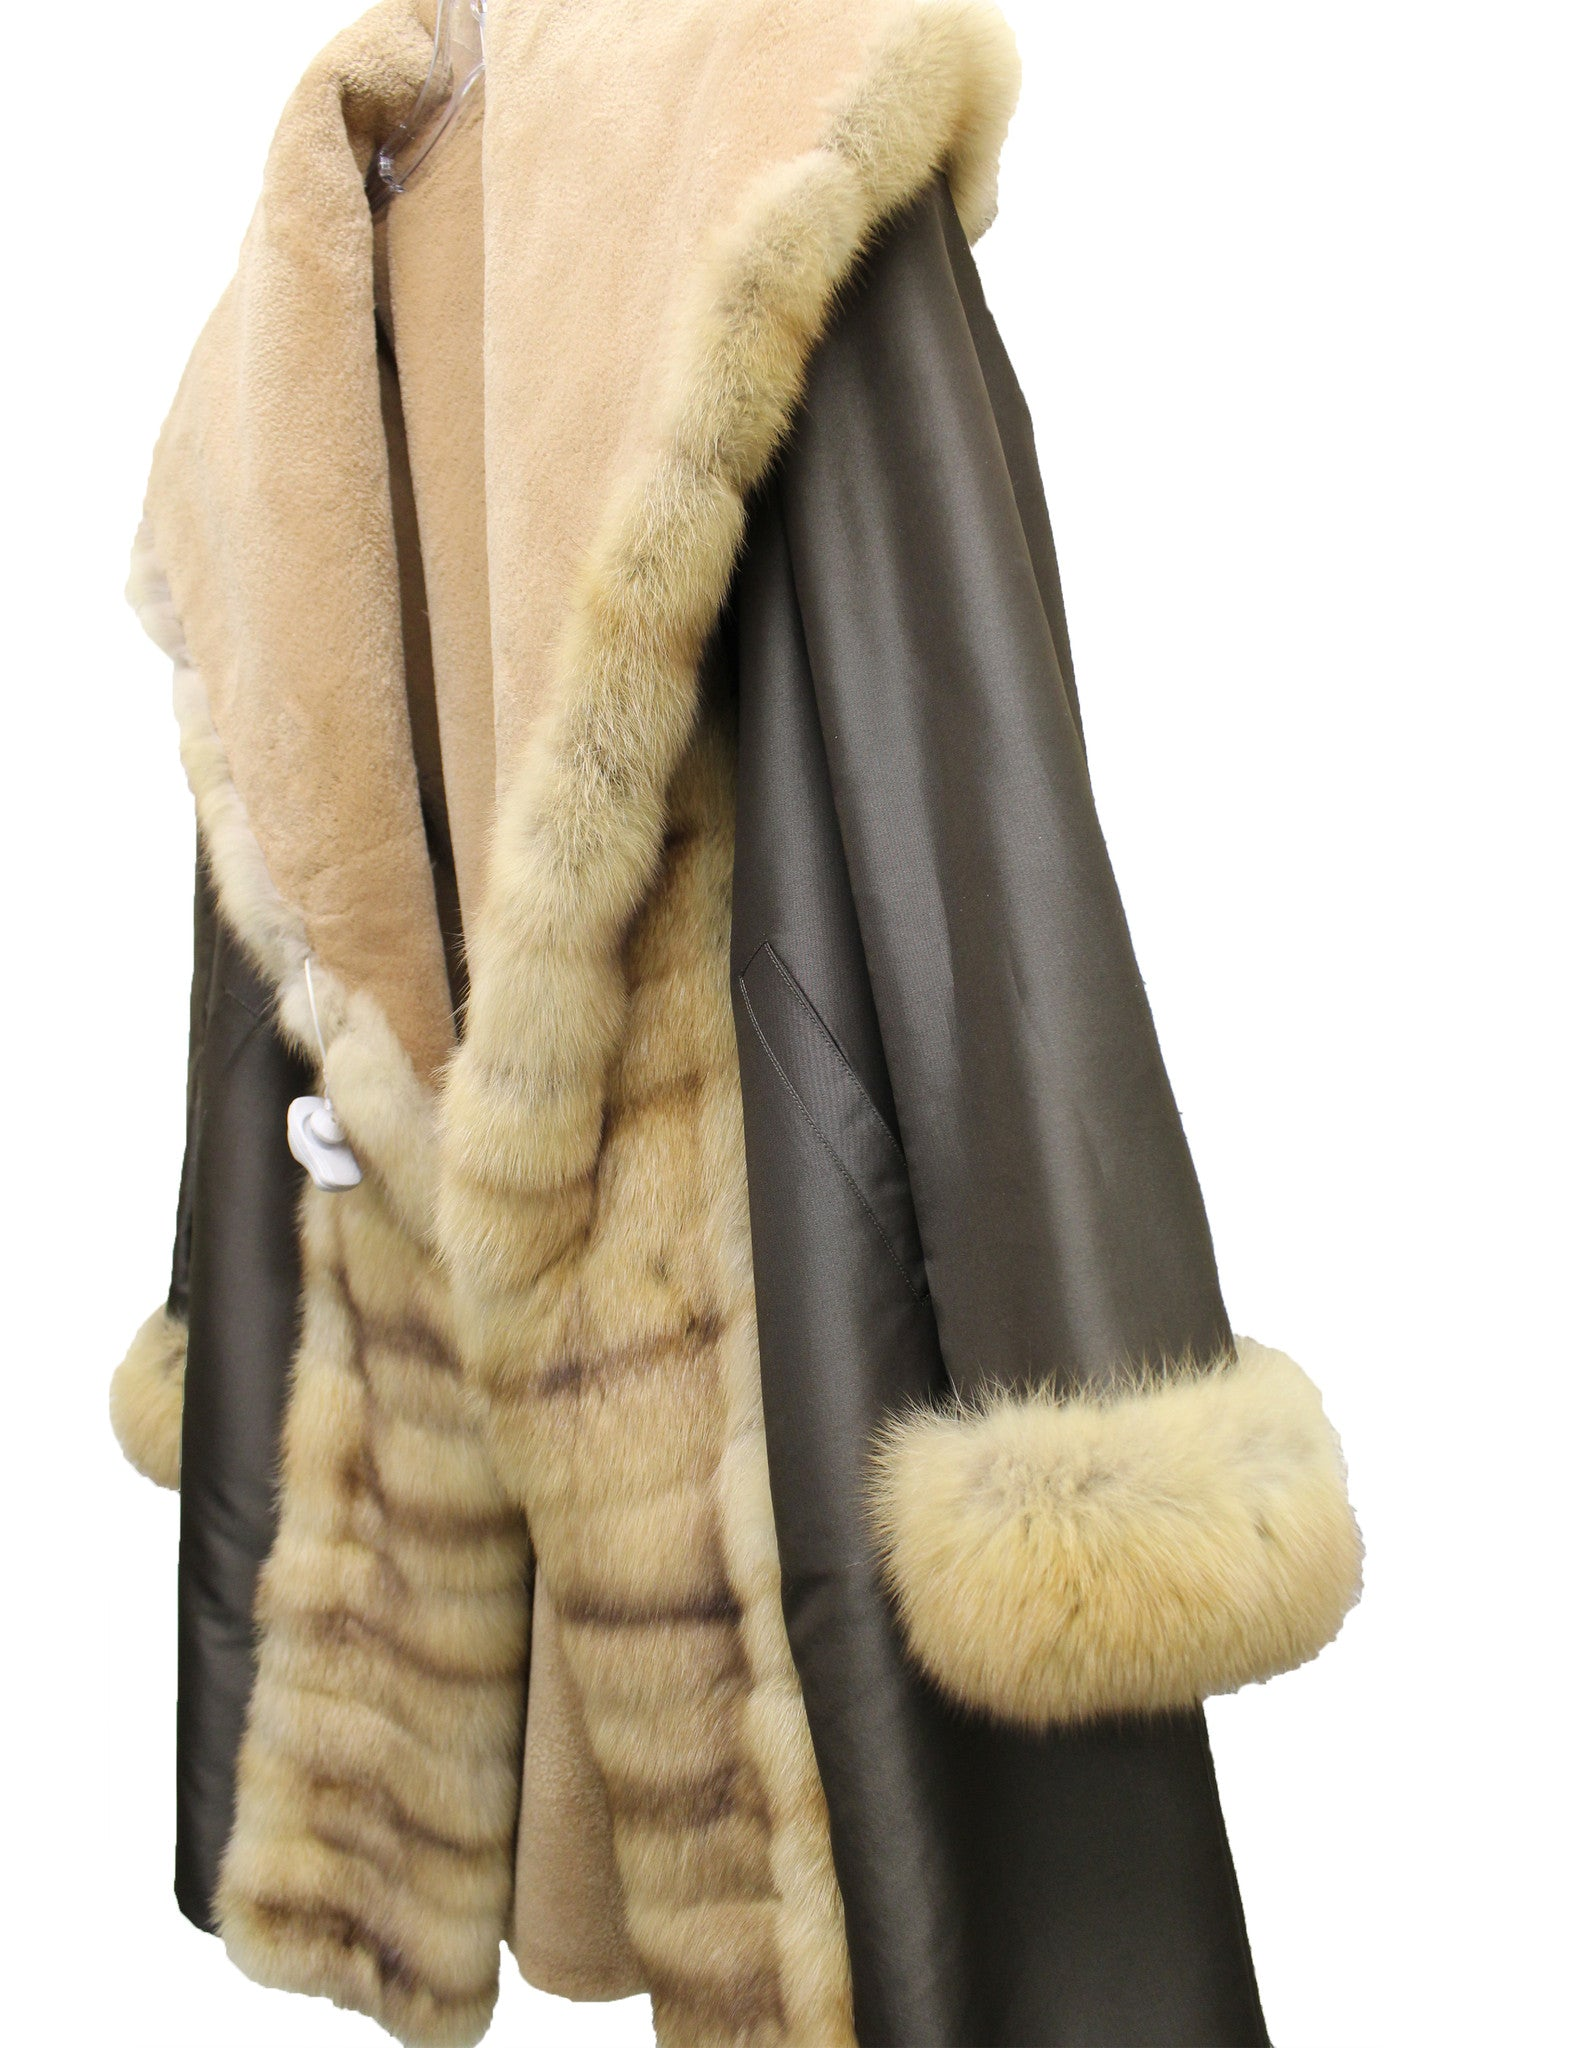 J. Mendel Sable and Beaver Fur Reversible Coat w/Hood (Size M) - Encore Consignment - 14